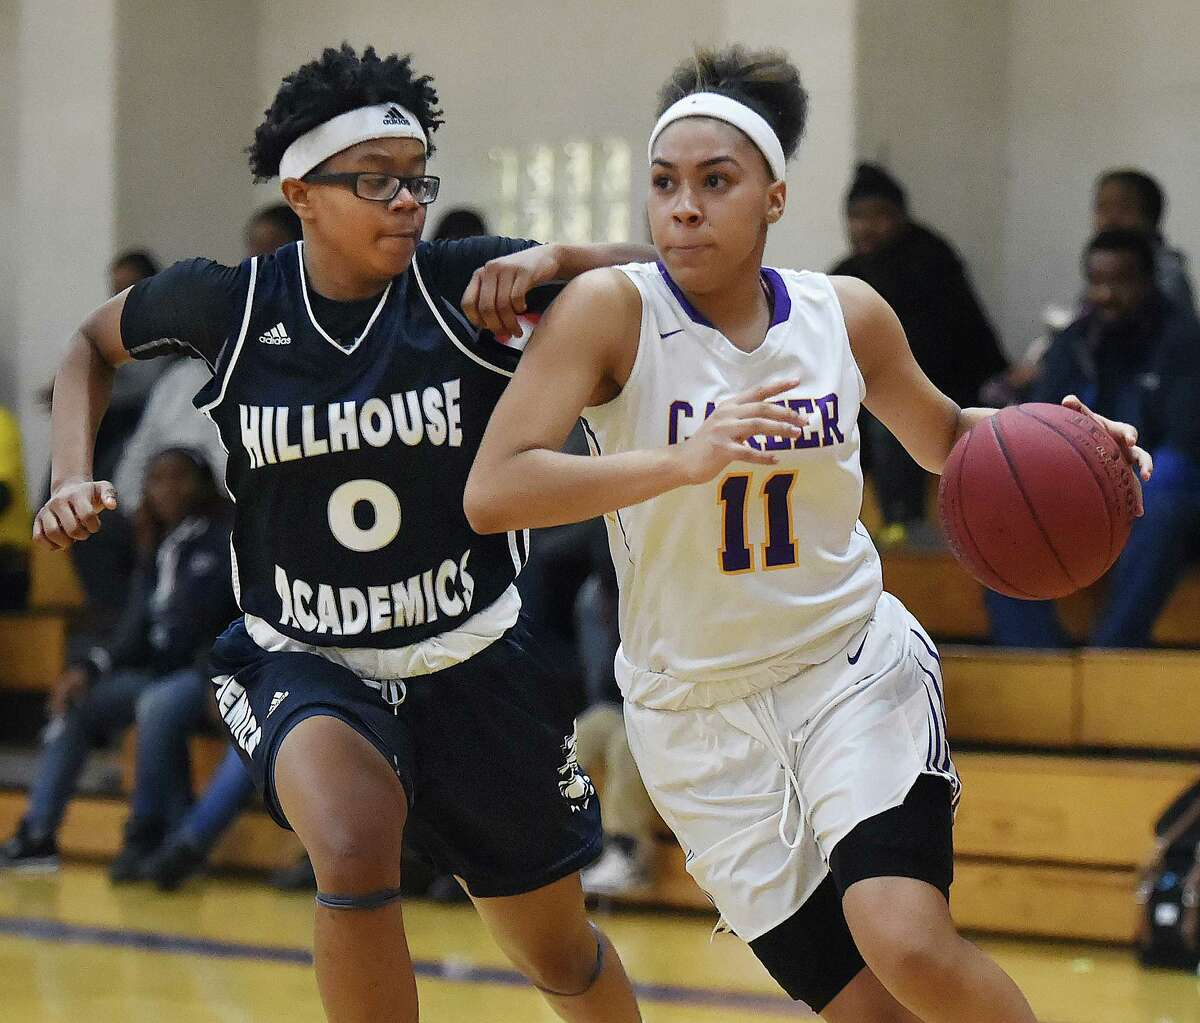 Career's Kyla Franklin drives past Tyree Allen of Hillhouse in a SCC tournament opener, Wednesday, Feb. 15, 2018, at the Hill Regional Career High School in New Haven. Career won, , 60-51.